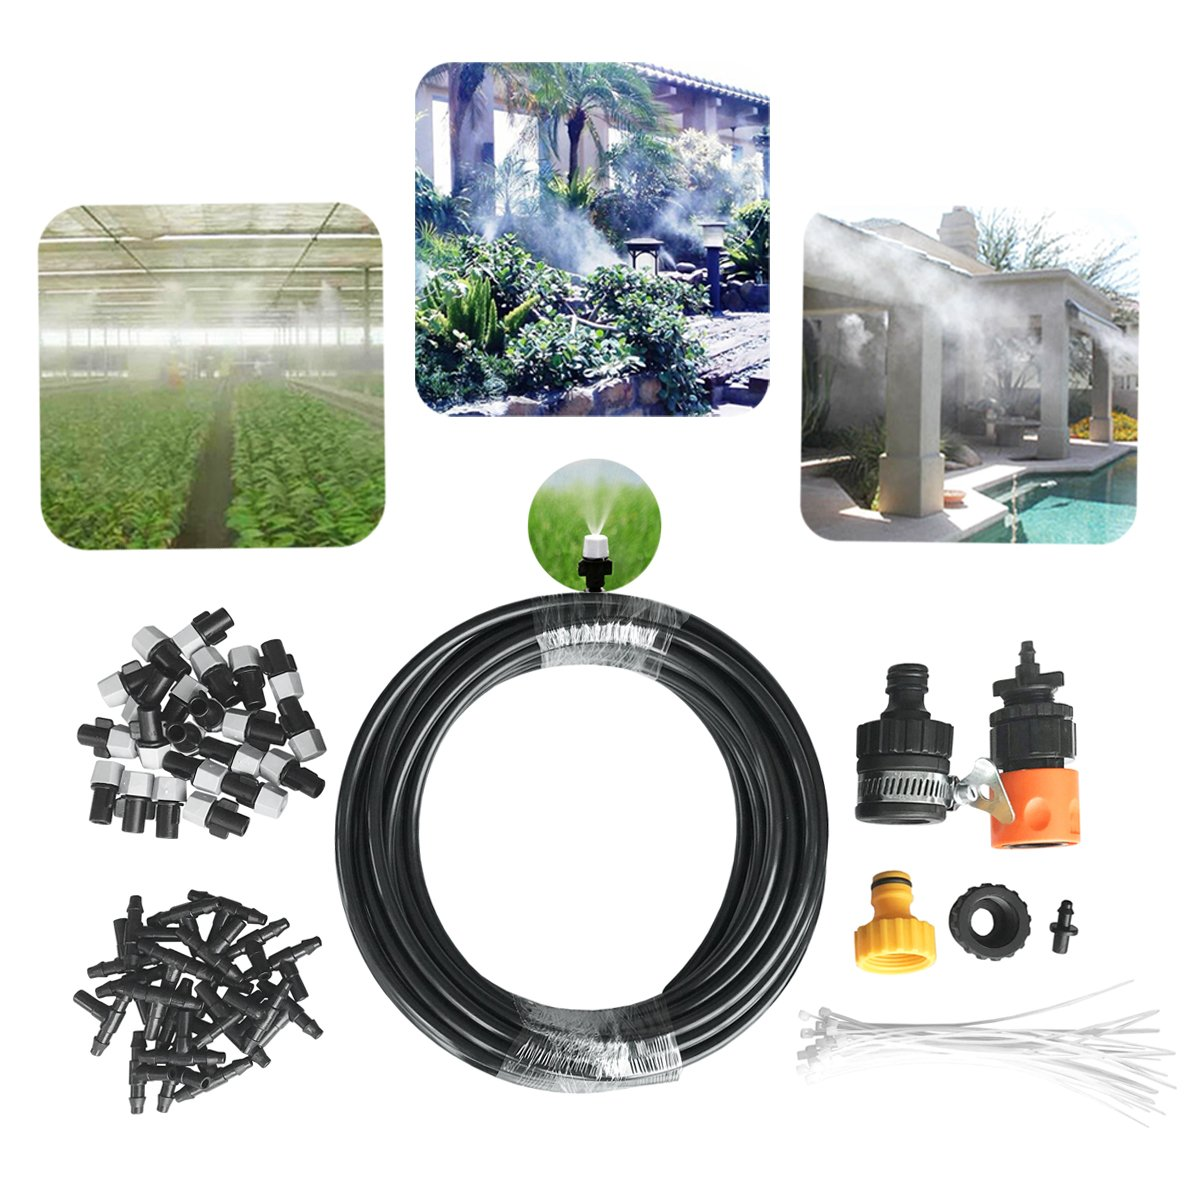 "DIY Misting System 50ft Misters Cooling Outdoor System Irrigation Sprinkle with 20pcs Misting Nozzles+3/4"" and 1/2'' Faucet Connector Each+1pc Universal Adapter for Patio Garden Greenhouse"